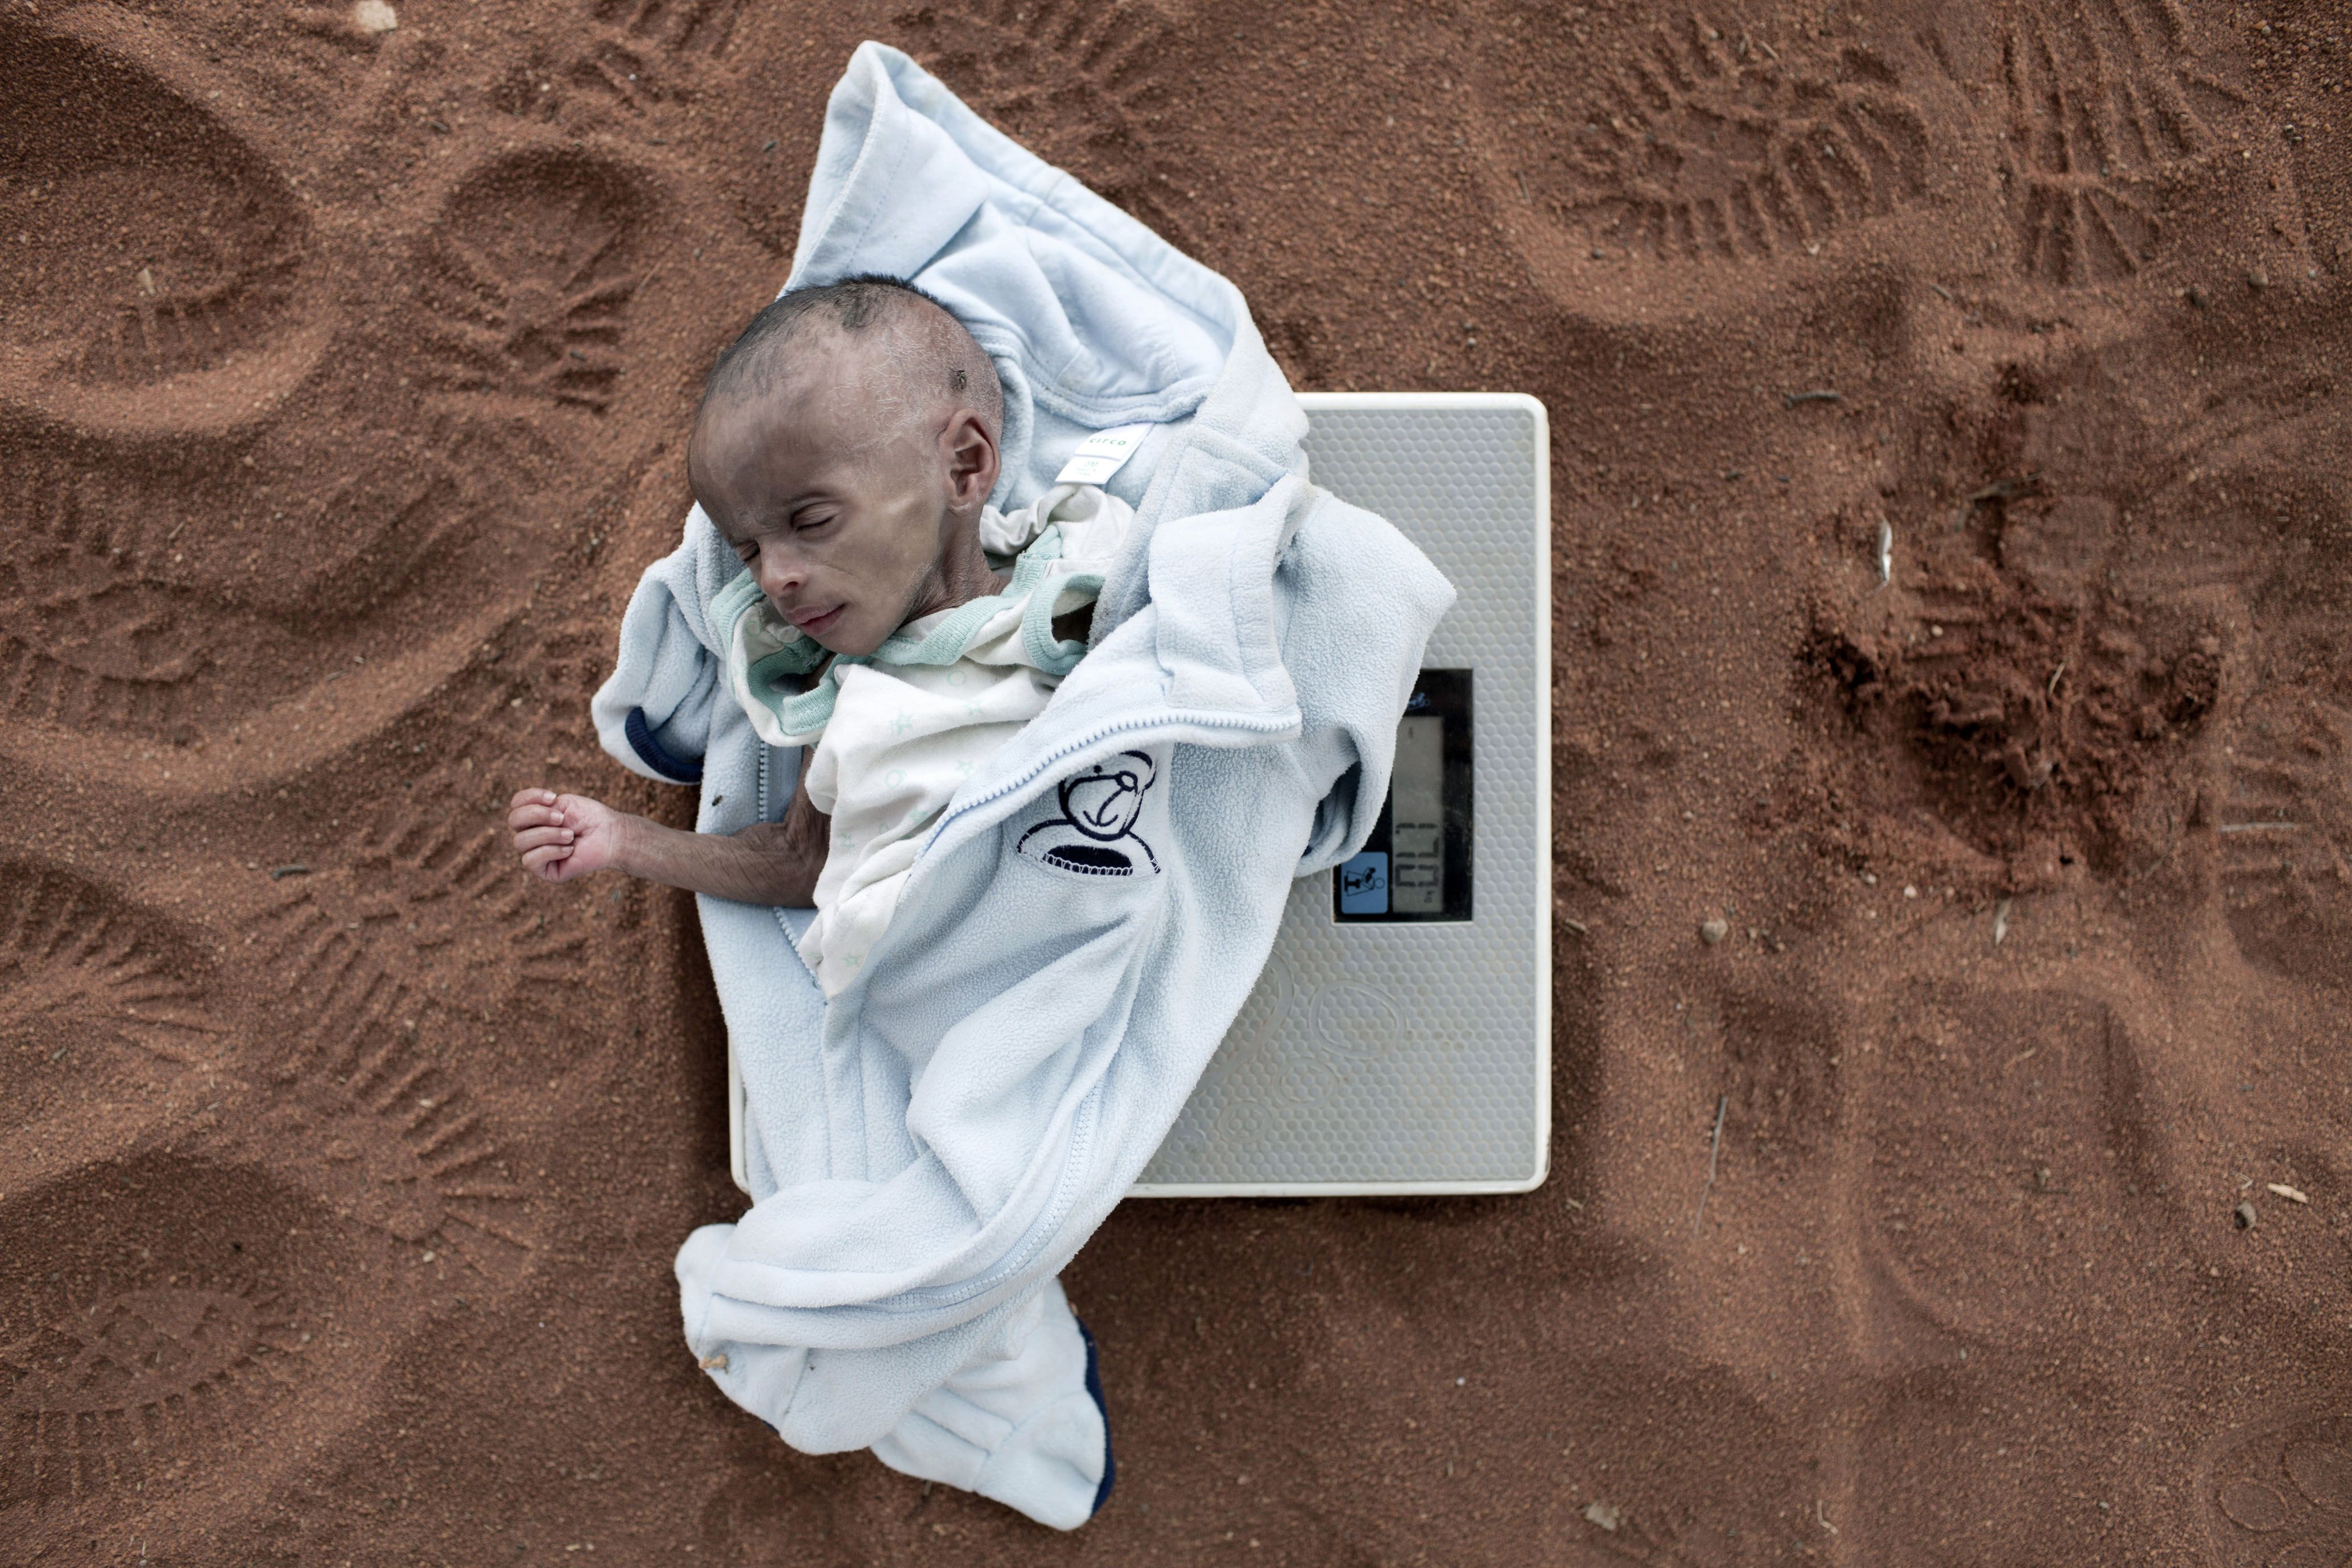 July 4, 2011. Umi Adan Olow, 3 months old, is weighed by Daniel Wanyoike, a community therapeutic nurse for Save the Children in Mathahalibah, Kenya.